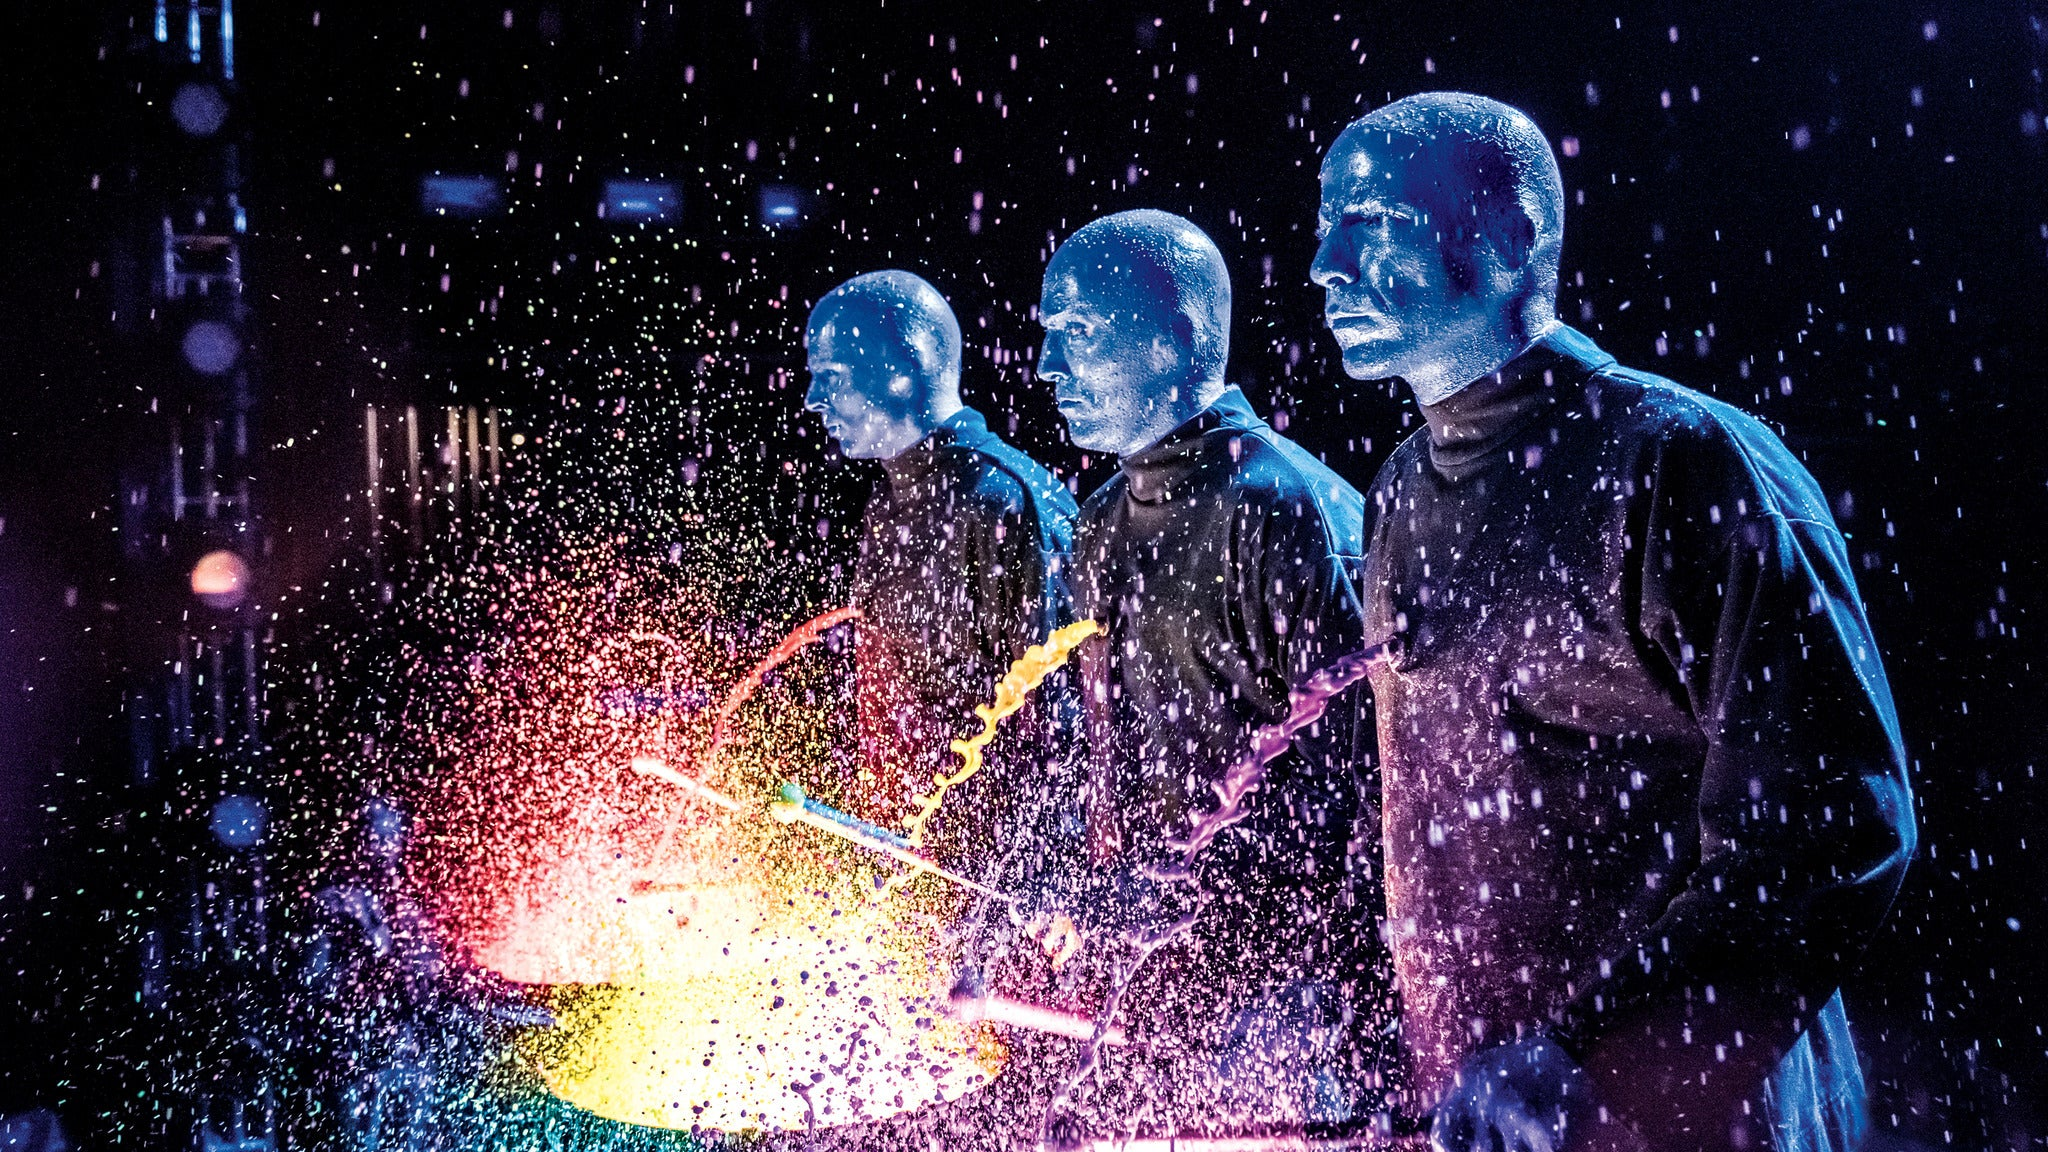 Blue Man Group at Luxor Hotel and Casino